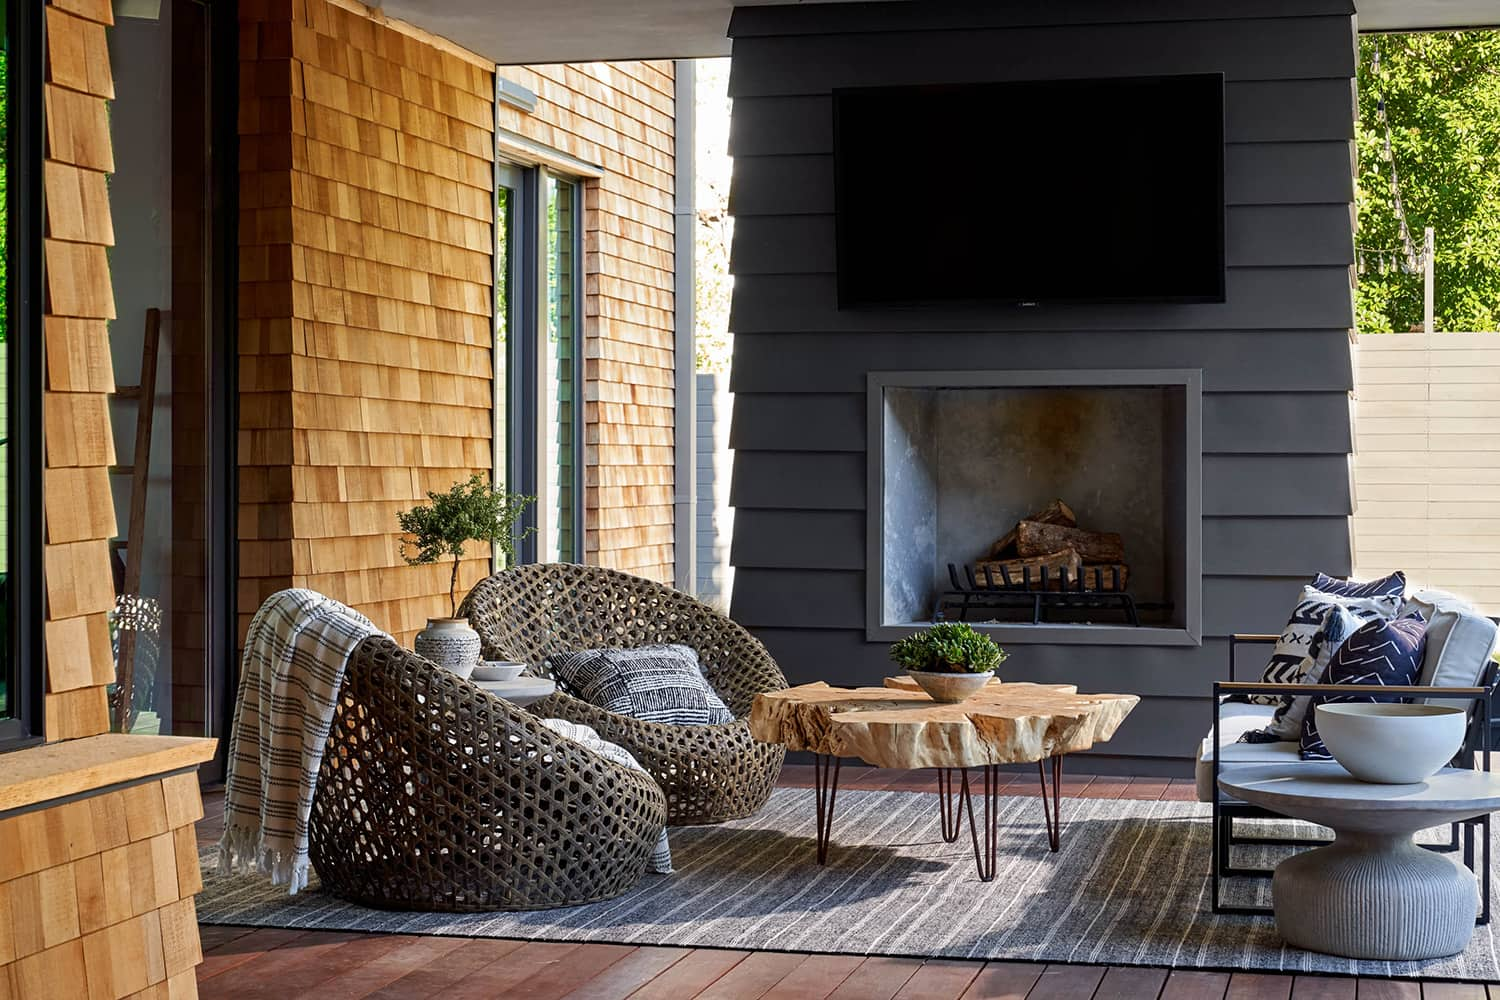 transitional-style-outdoor-living-room